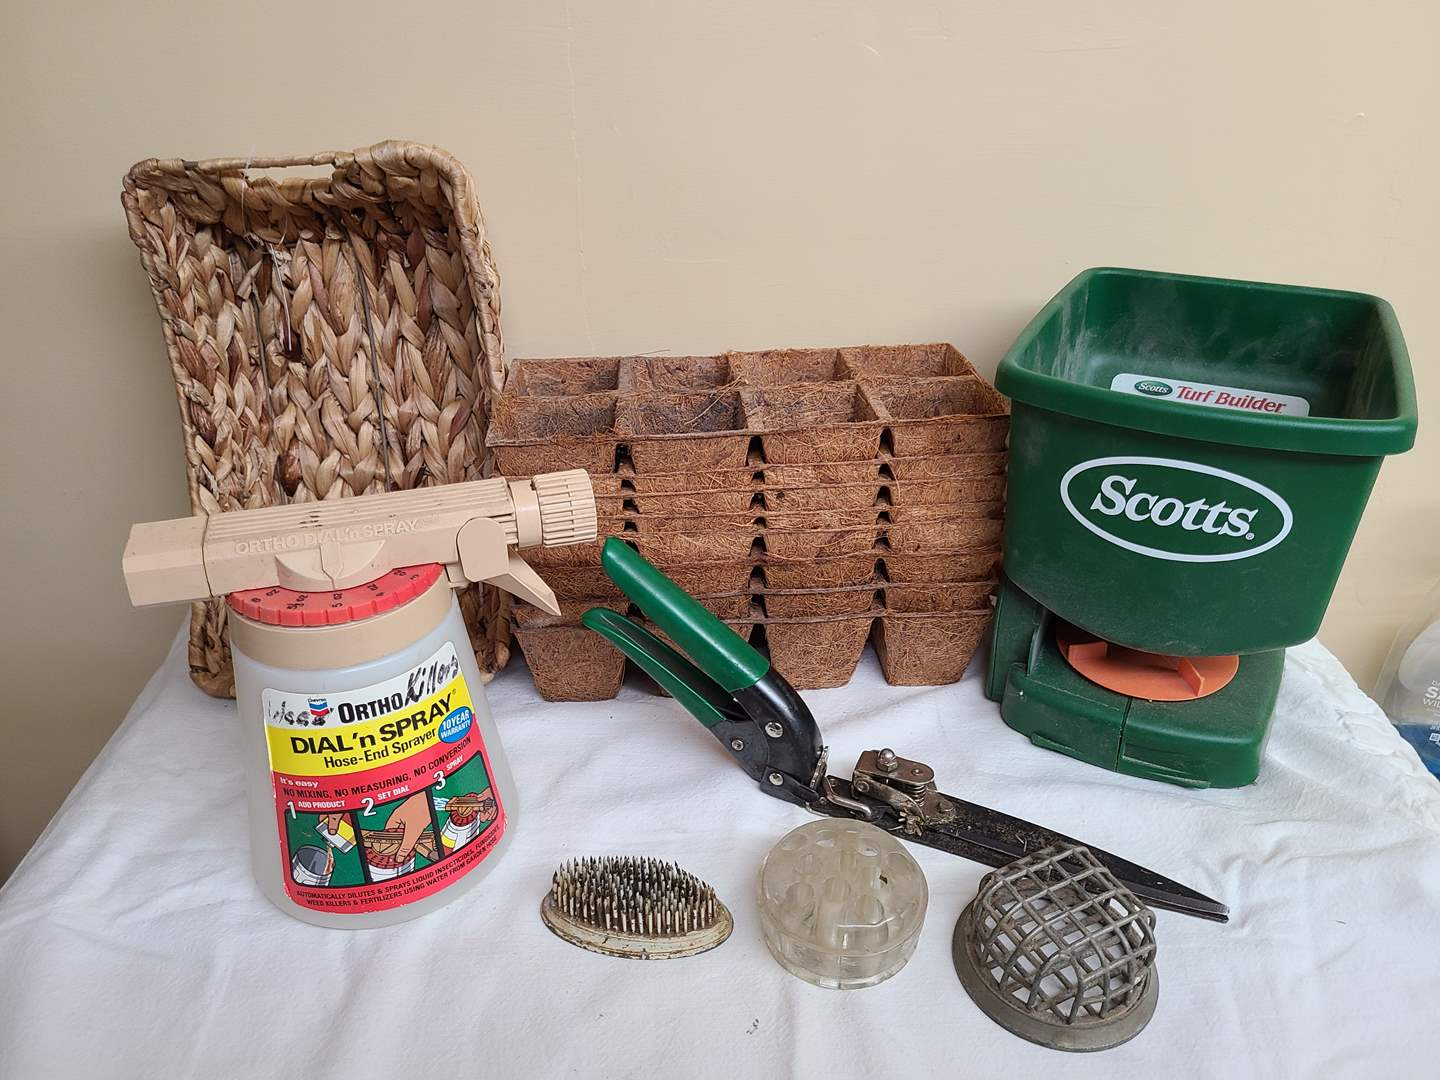 Lot#110 - Scotts Hand Spreader * Dial 'n Spray by Ortho * Garden Stuff * Shallow Basket with tag (main image)